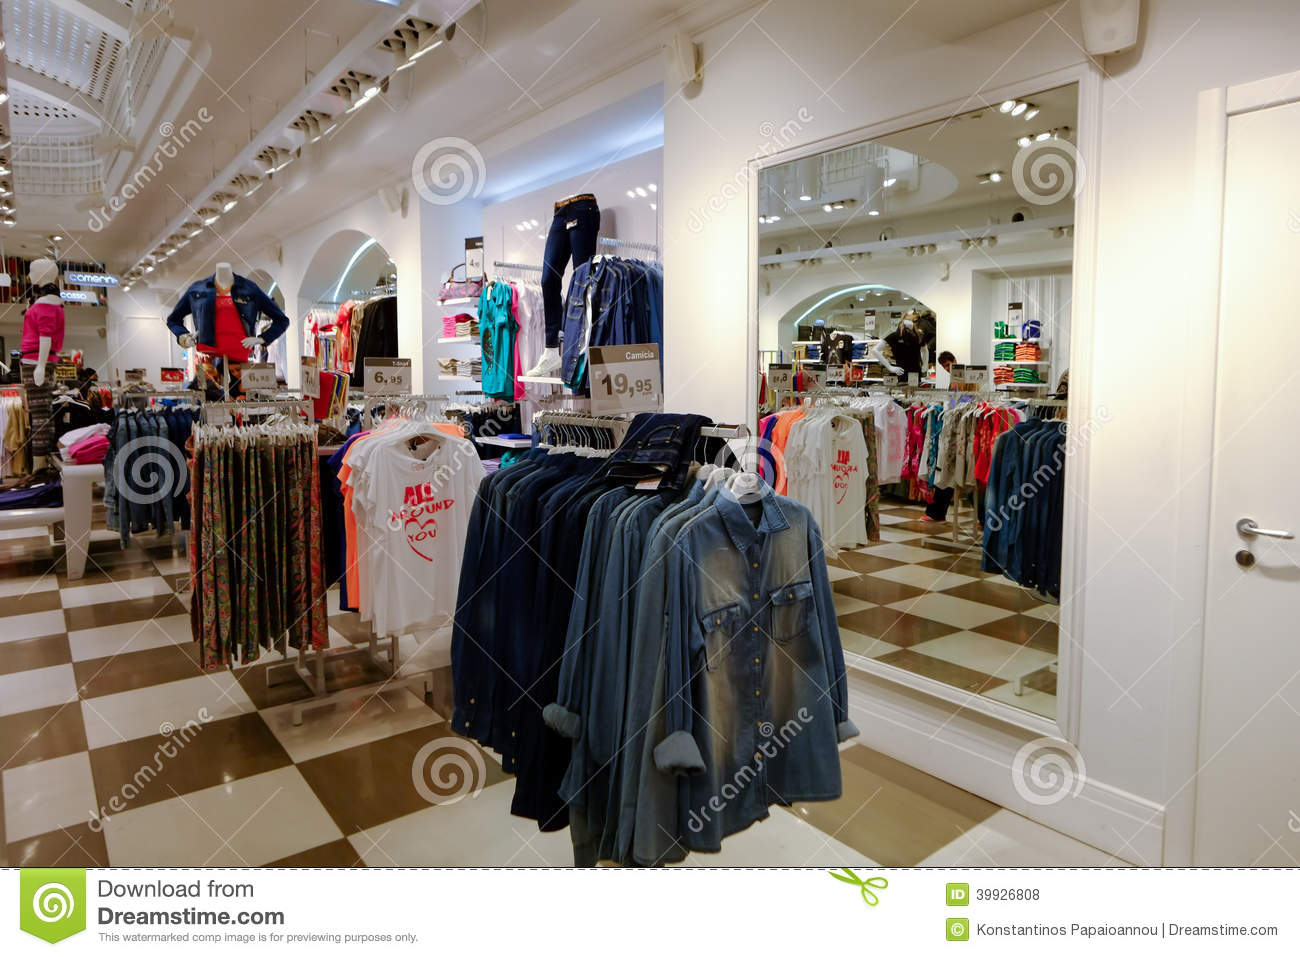 Online street clothing stores